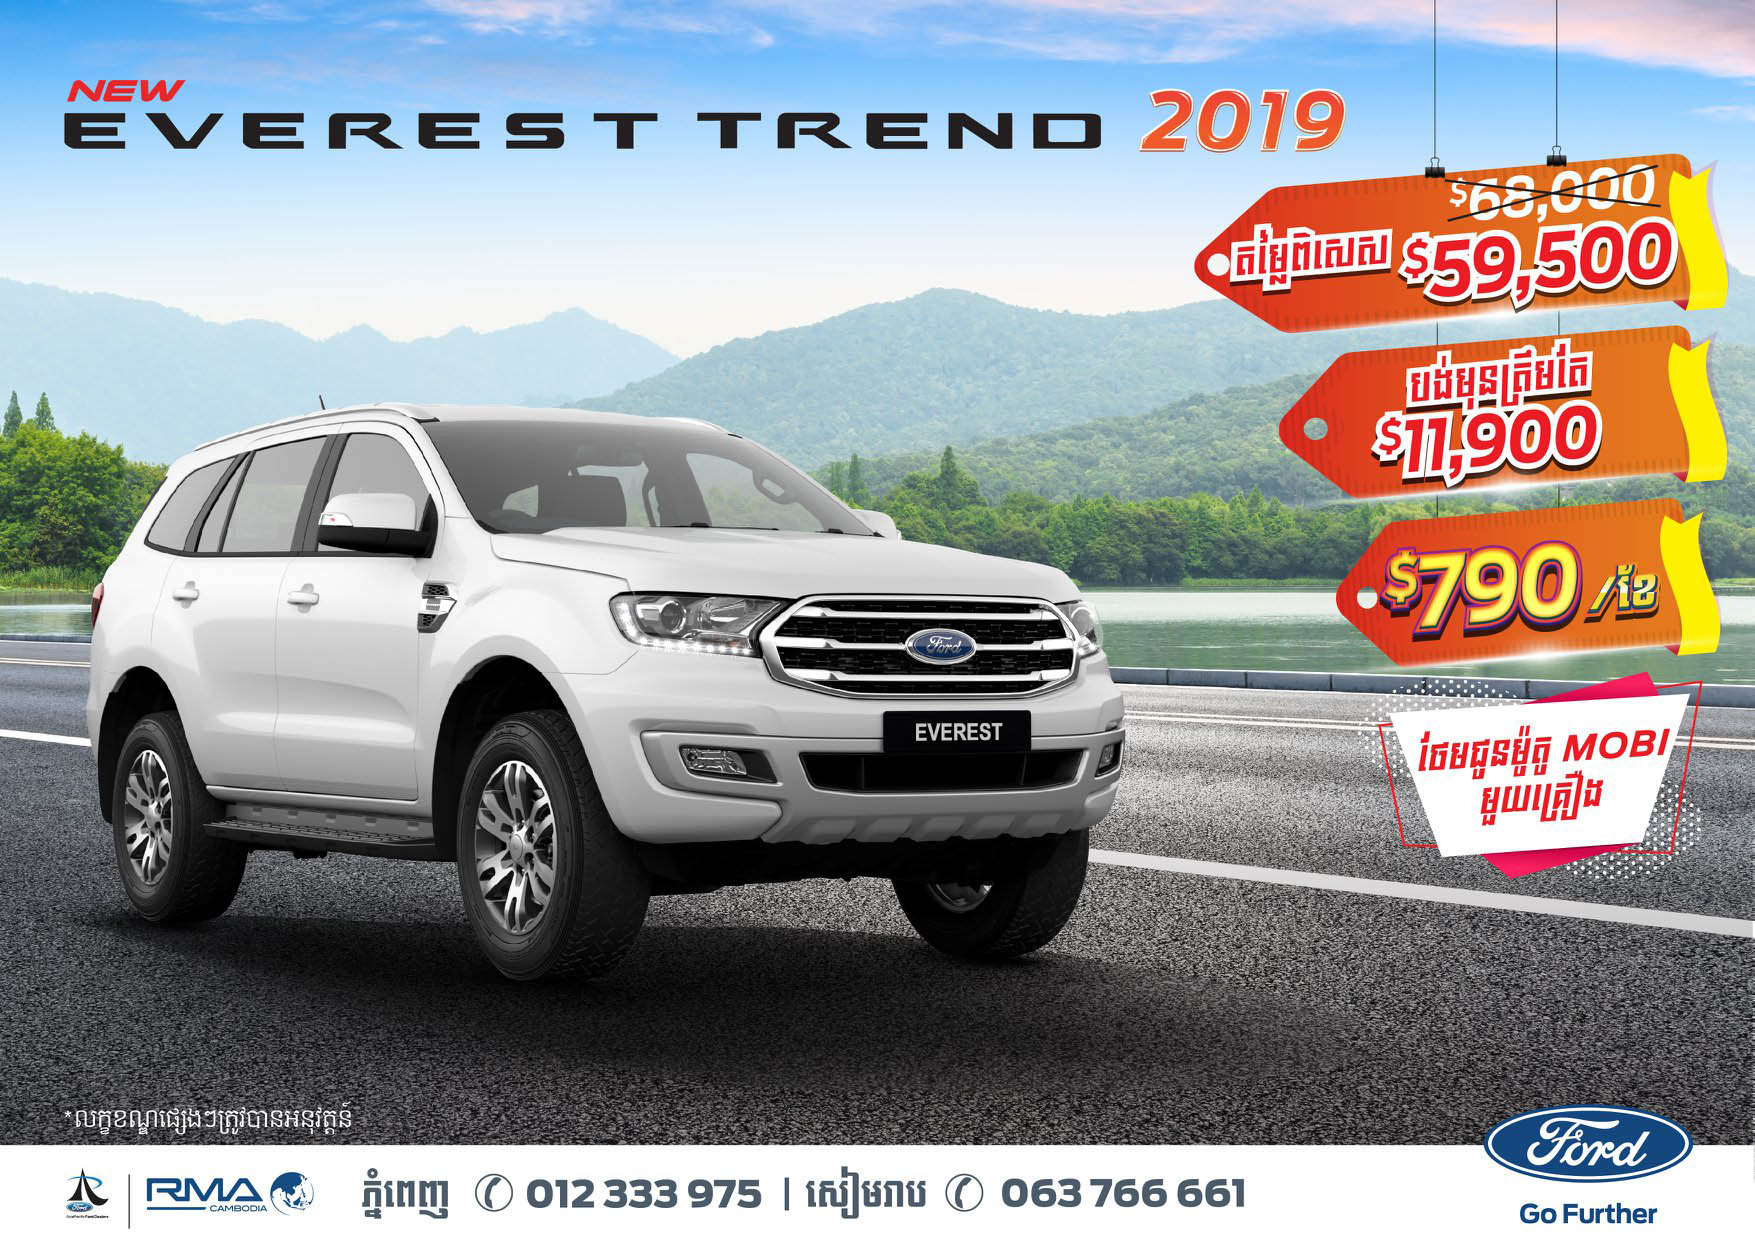 Offers & Promotions – Ford Cambodia